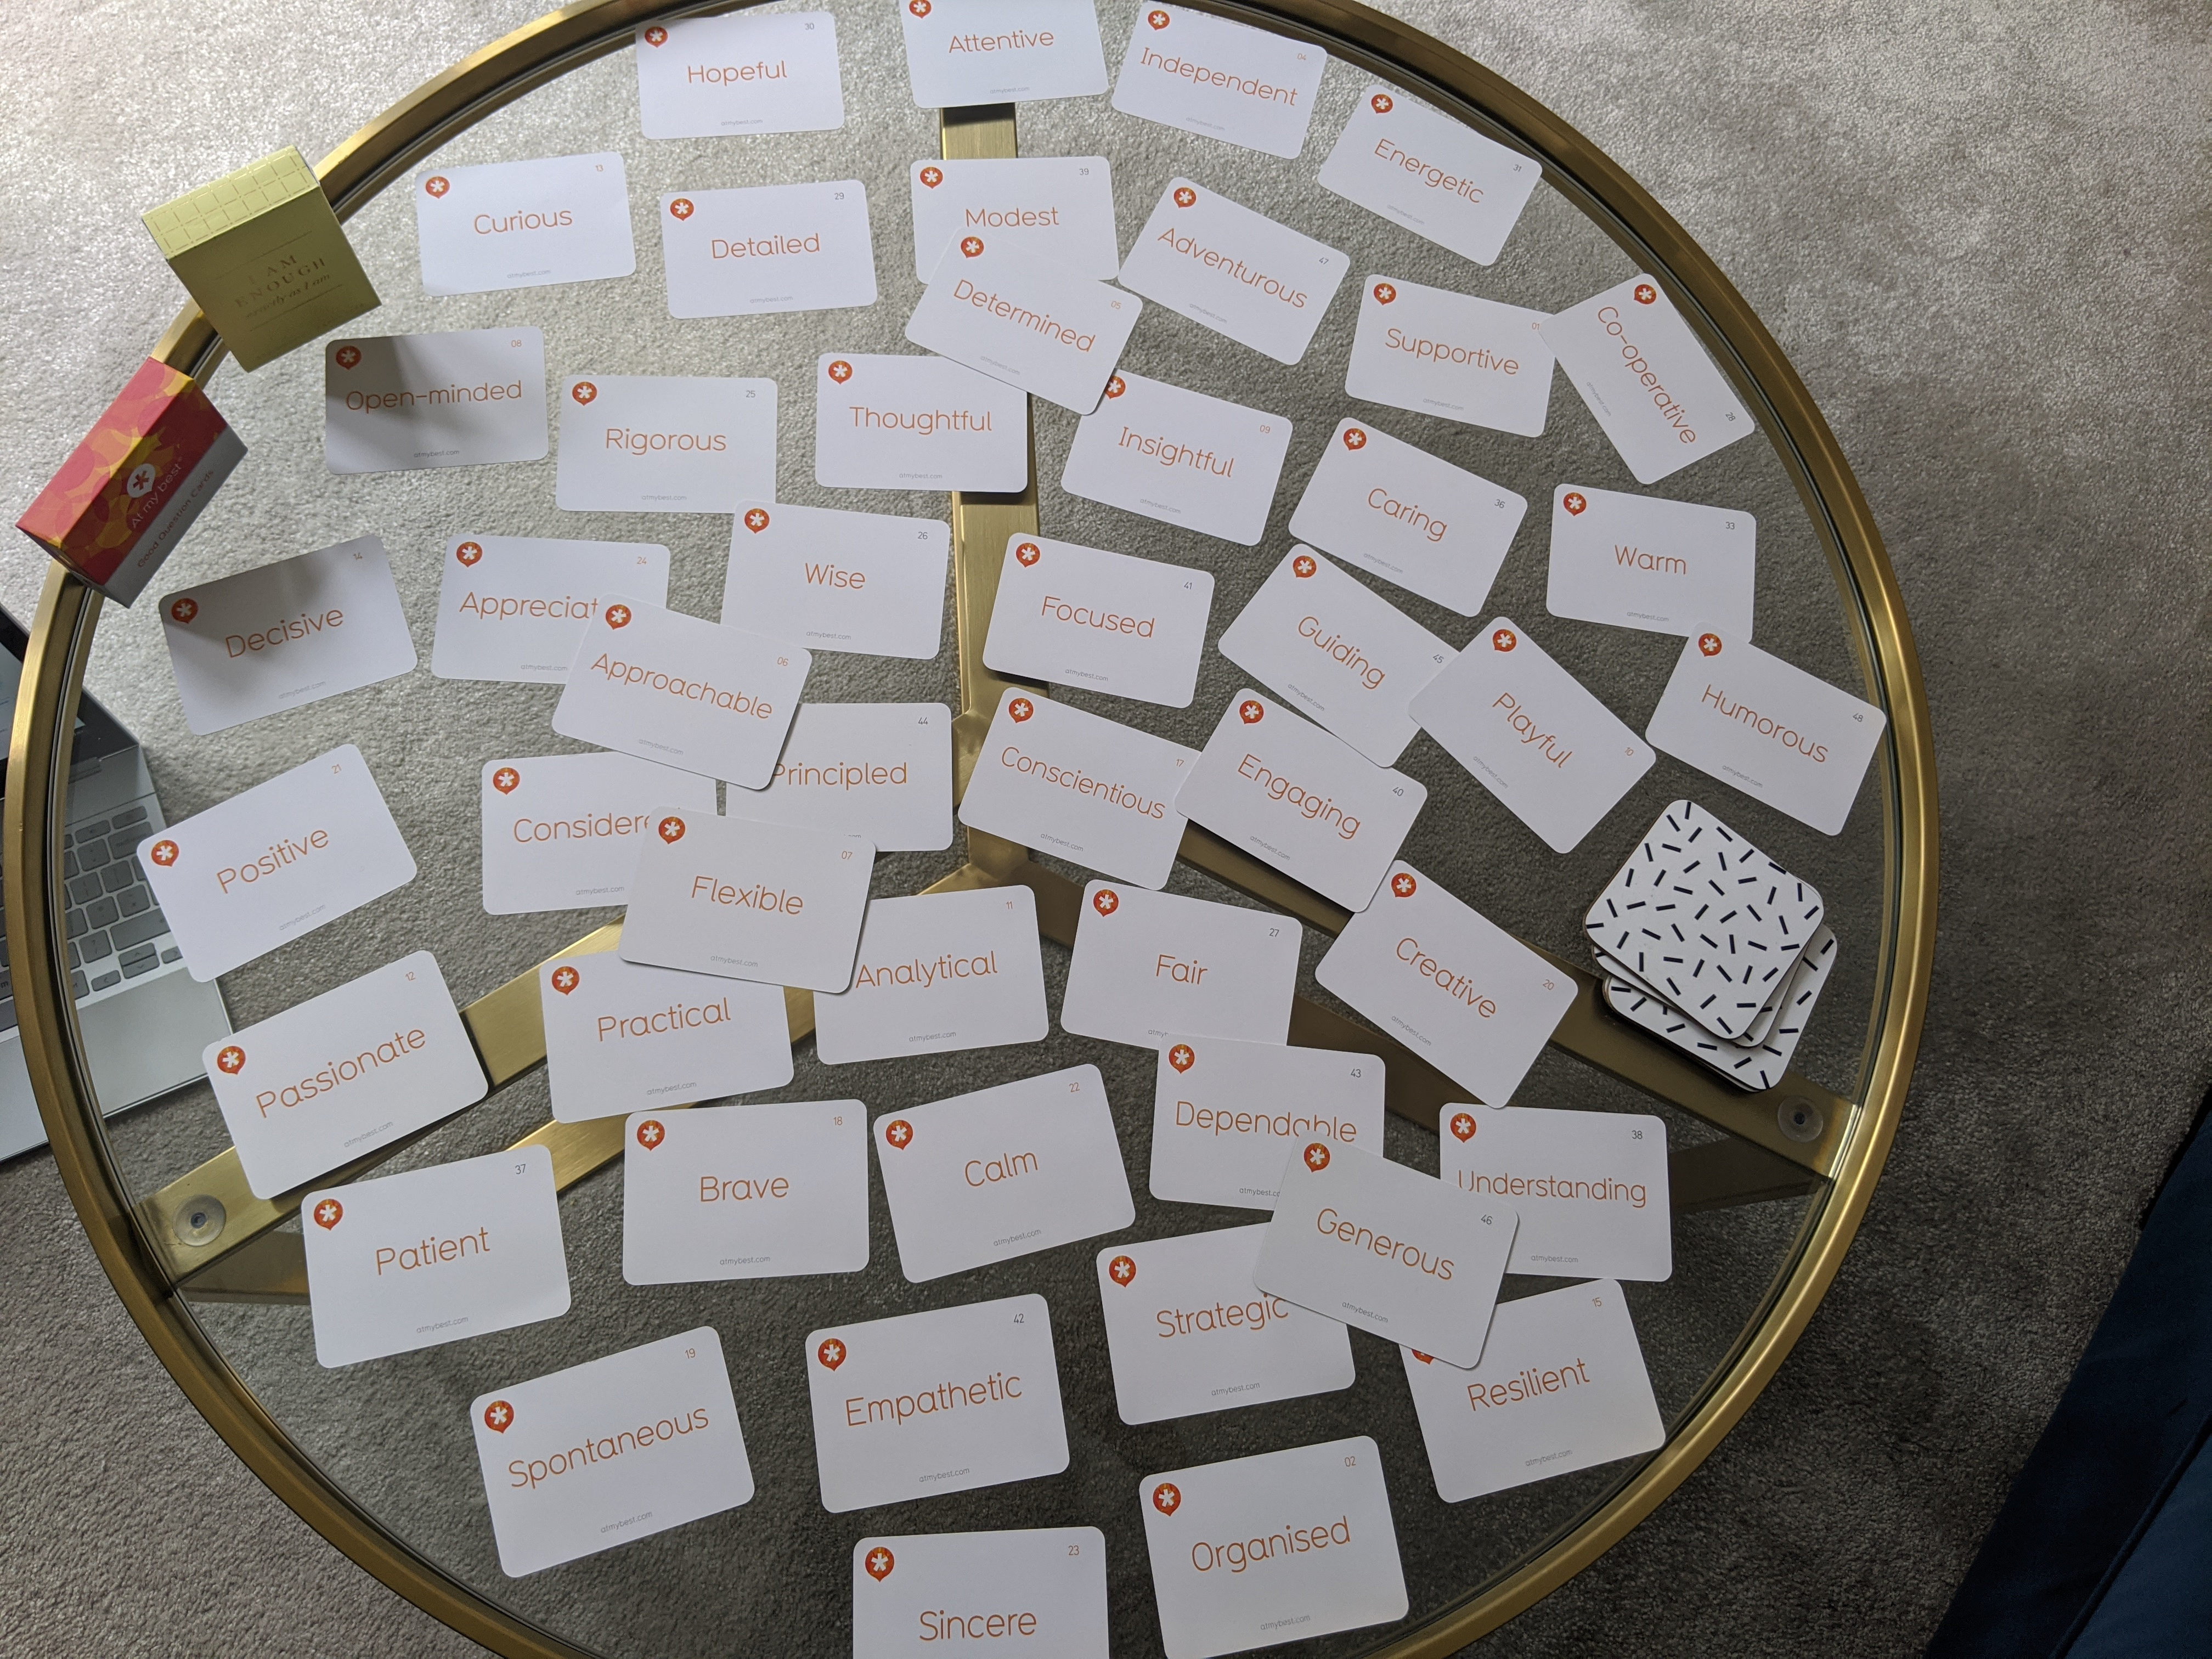 Strengths cards scattered on a round glass table